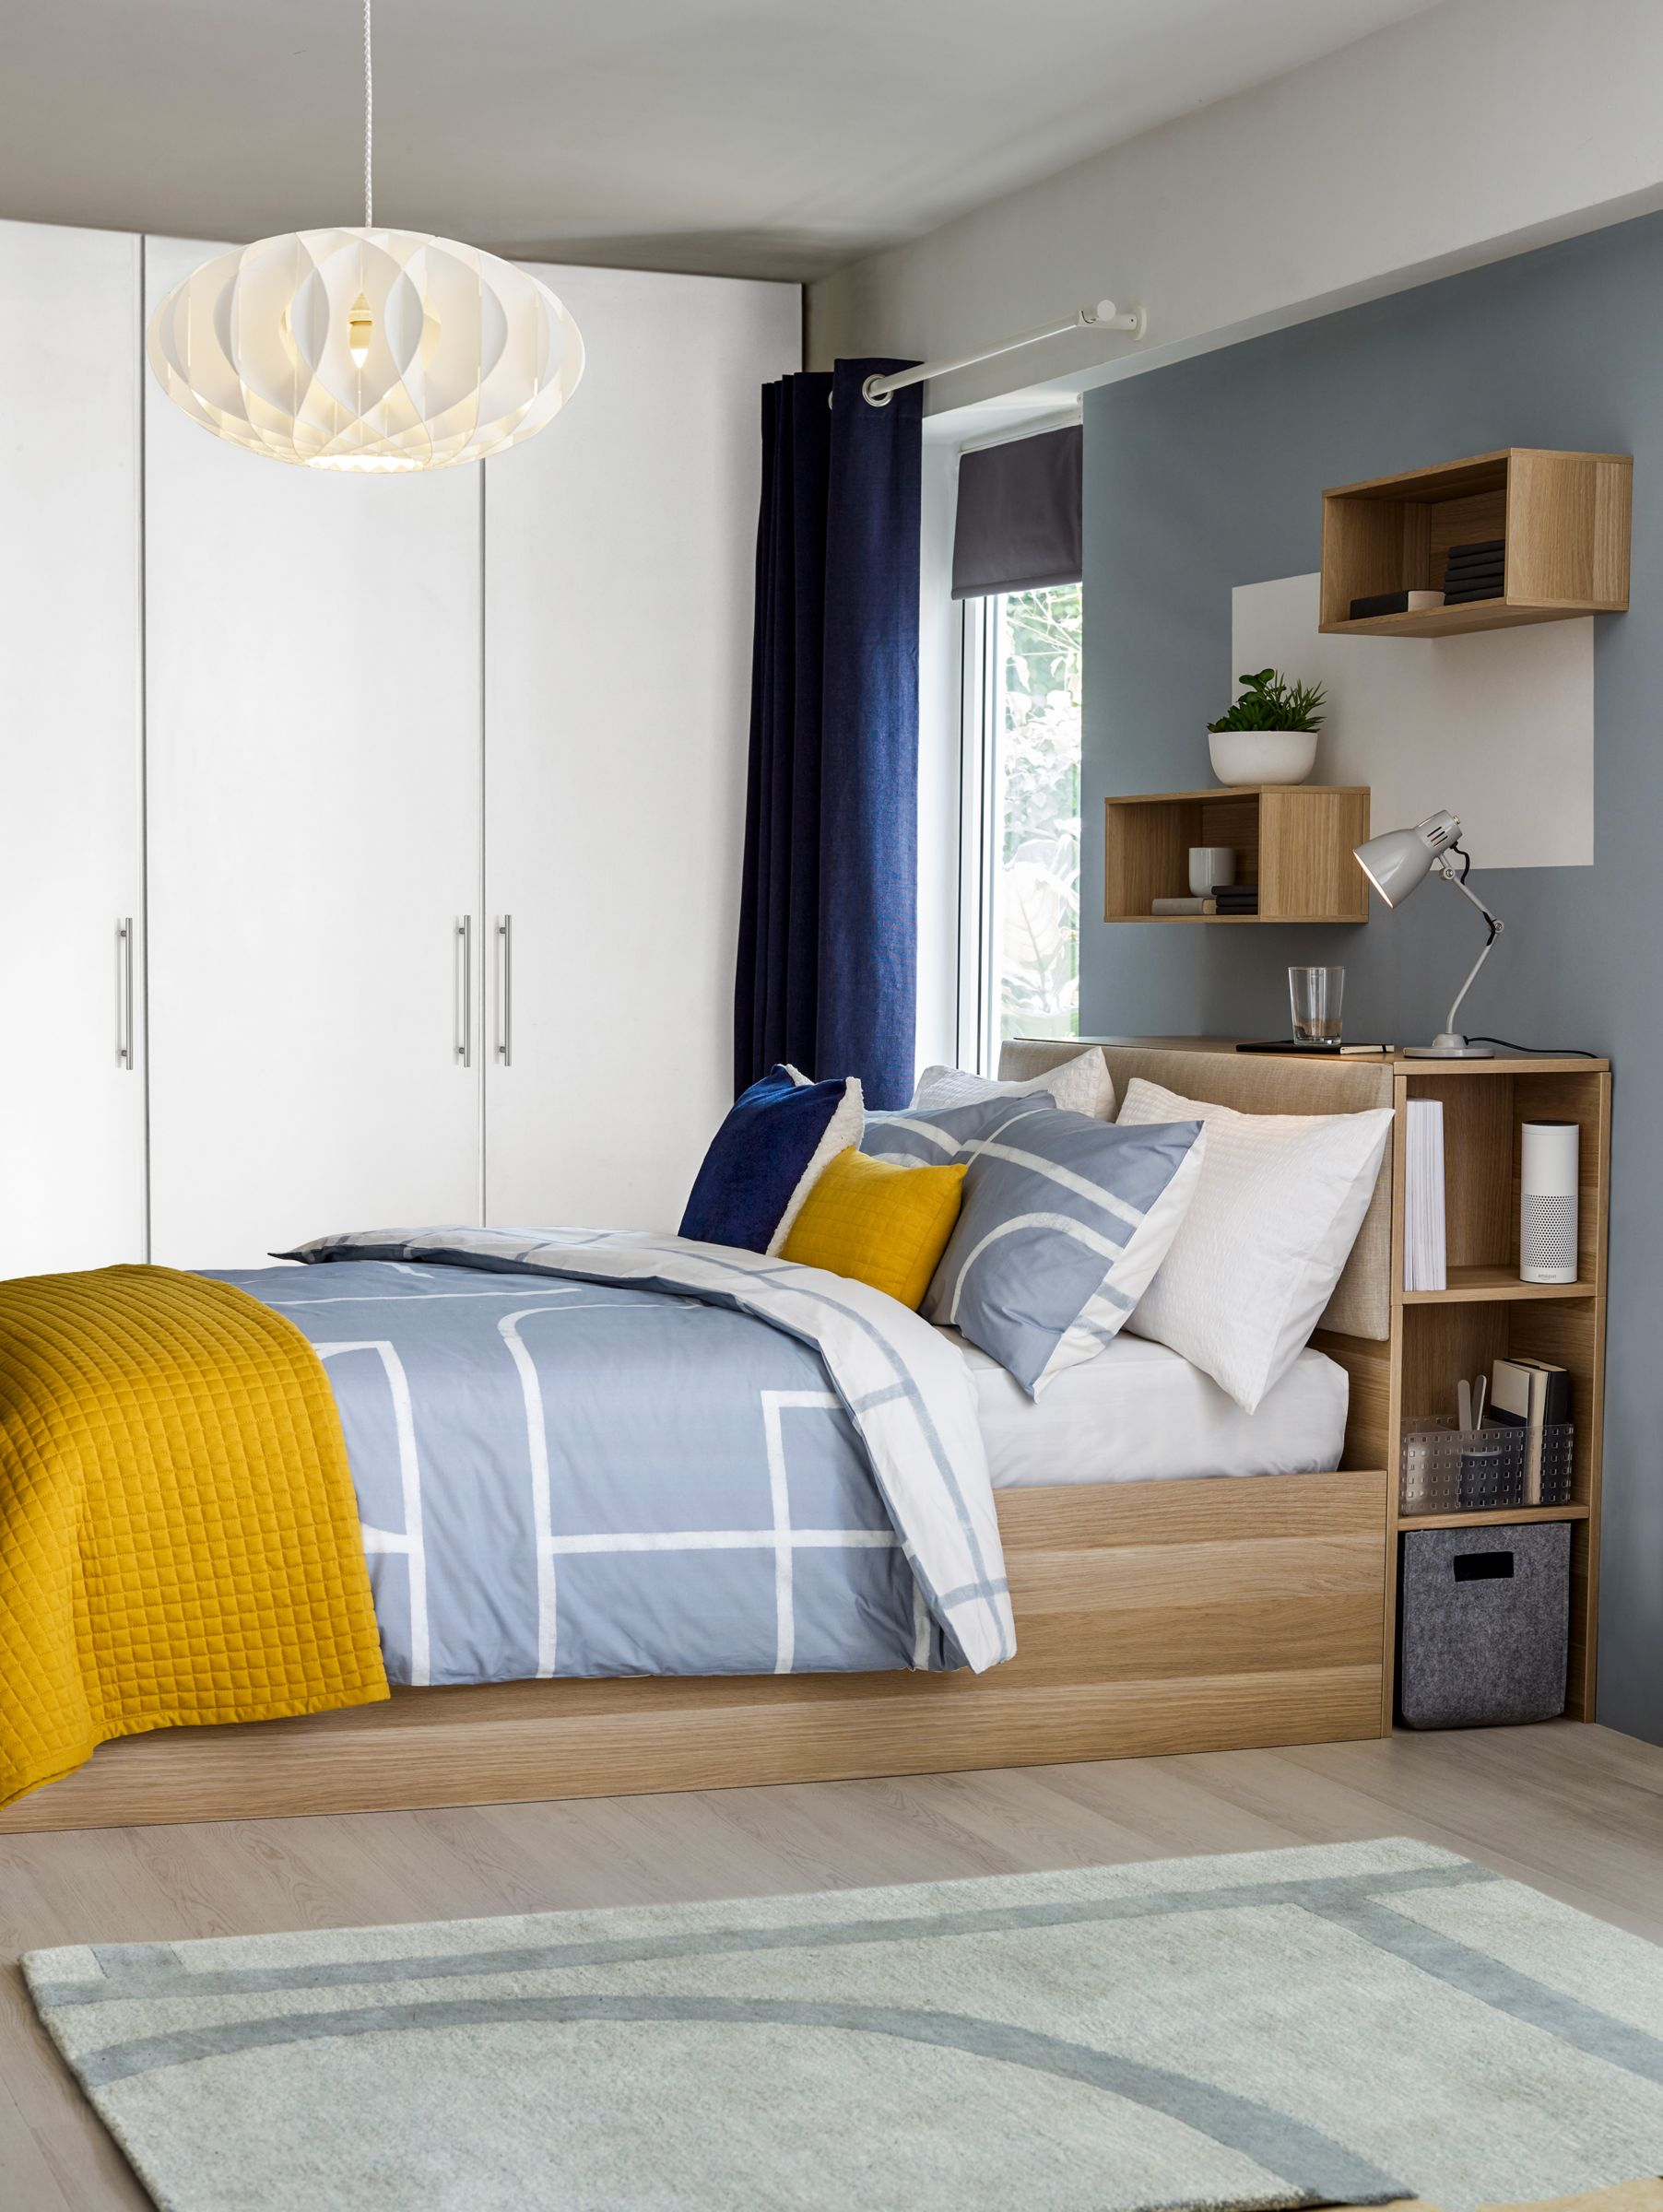 Bedroom furniture bedroom john lewis for Bedroom inspiration john lewis